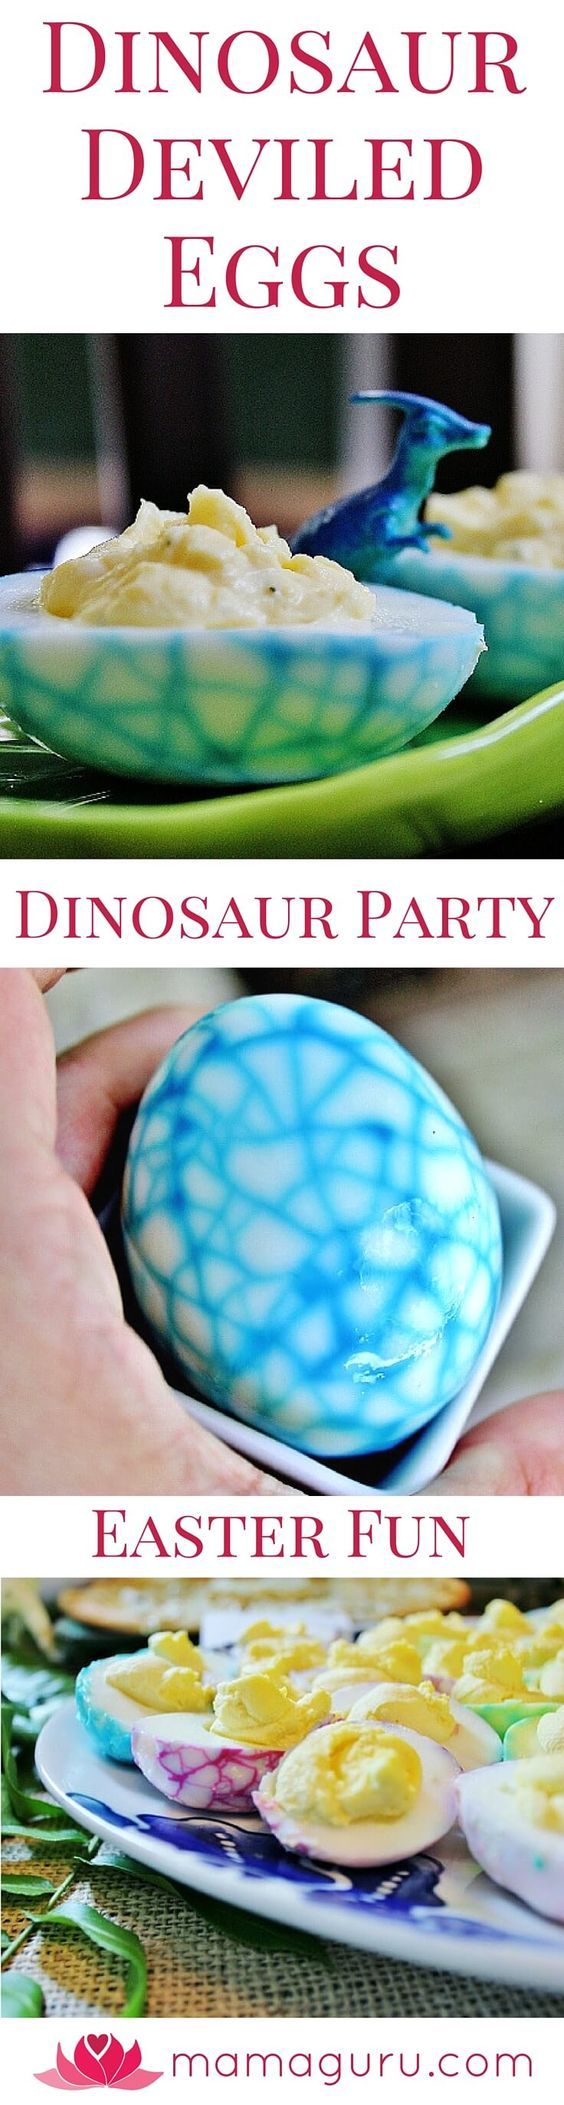 Here's the coolest thing you can do with a hard-boiled egg: make a Dinosaur Deviled Egg! Of course, it's great for Dinosaur Parties, but it's also a fun way to liven up Easter eggs. Most people dye the shell, but you can color the actual egg. It's easy and makes for a spectacular presentation. It's completely safe to eat and always delicious. A feast for the eyes and mouth. What could be better?